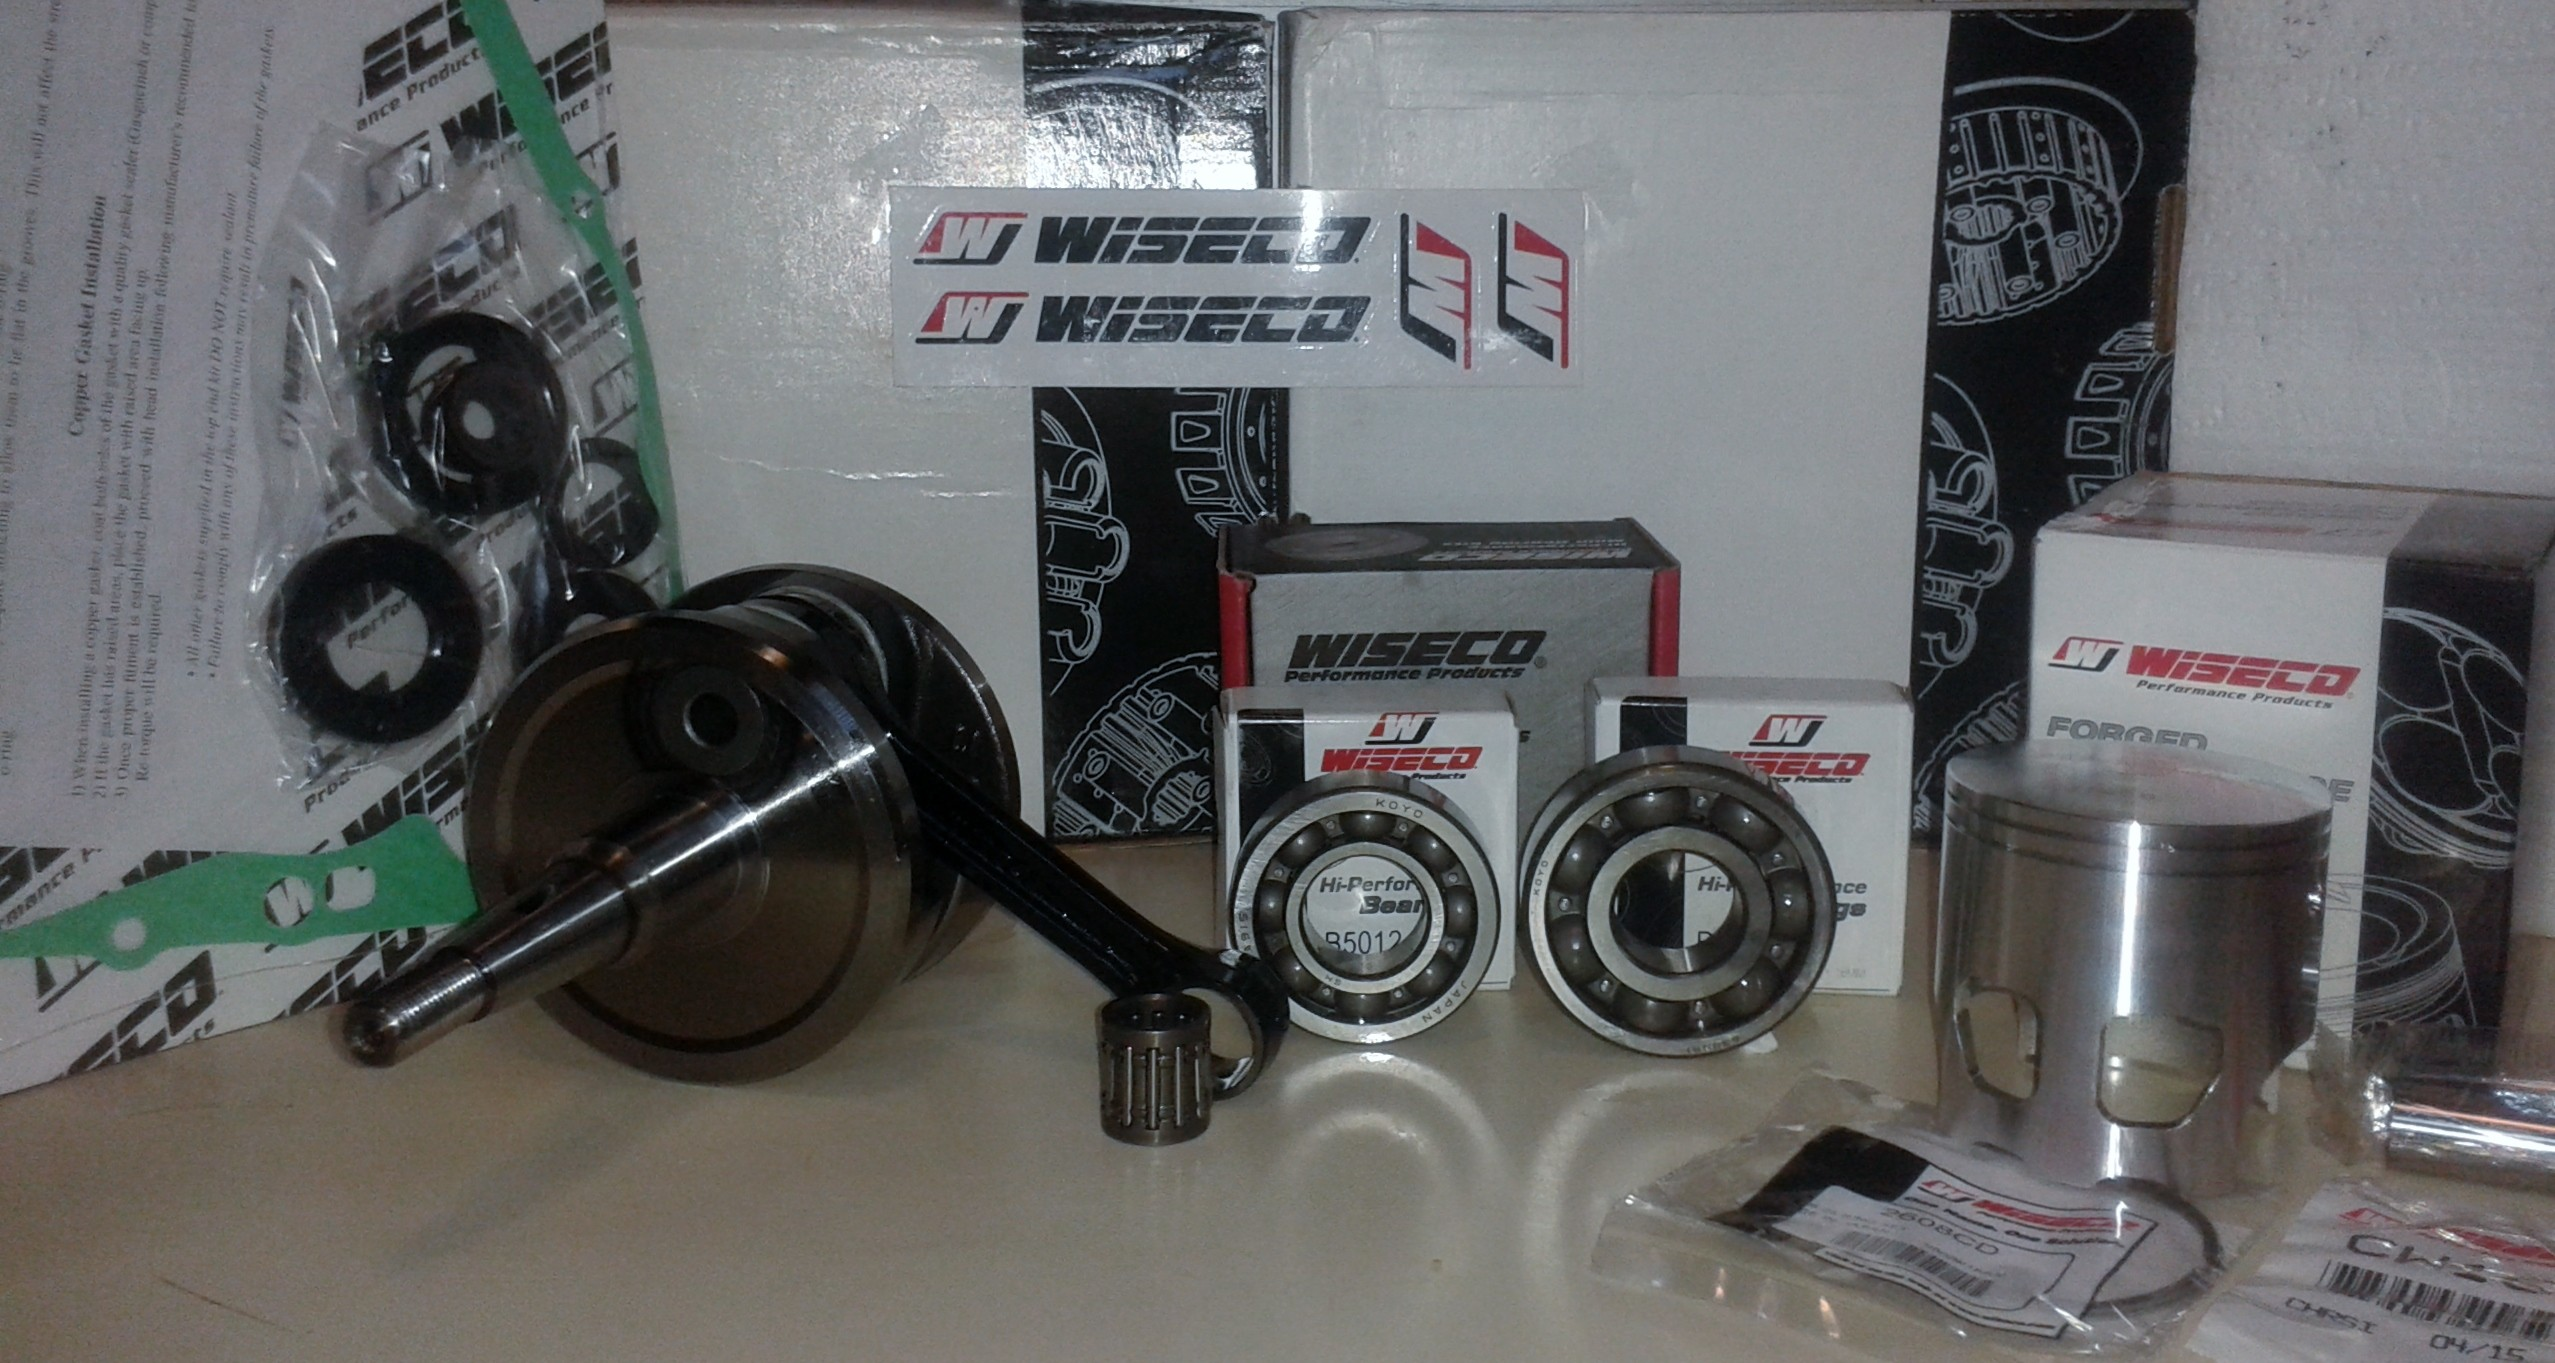 Kit motor Wiseco completo para DT200